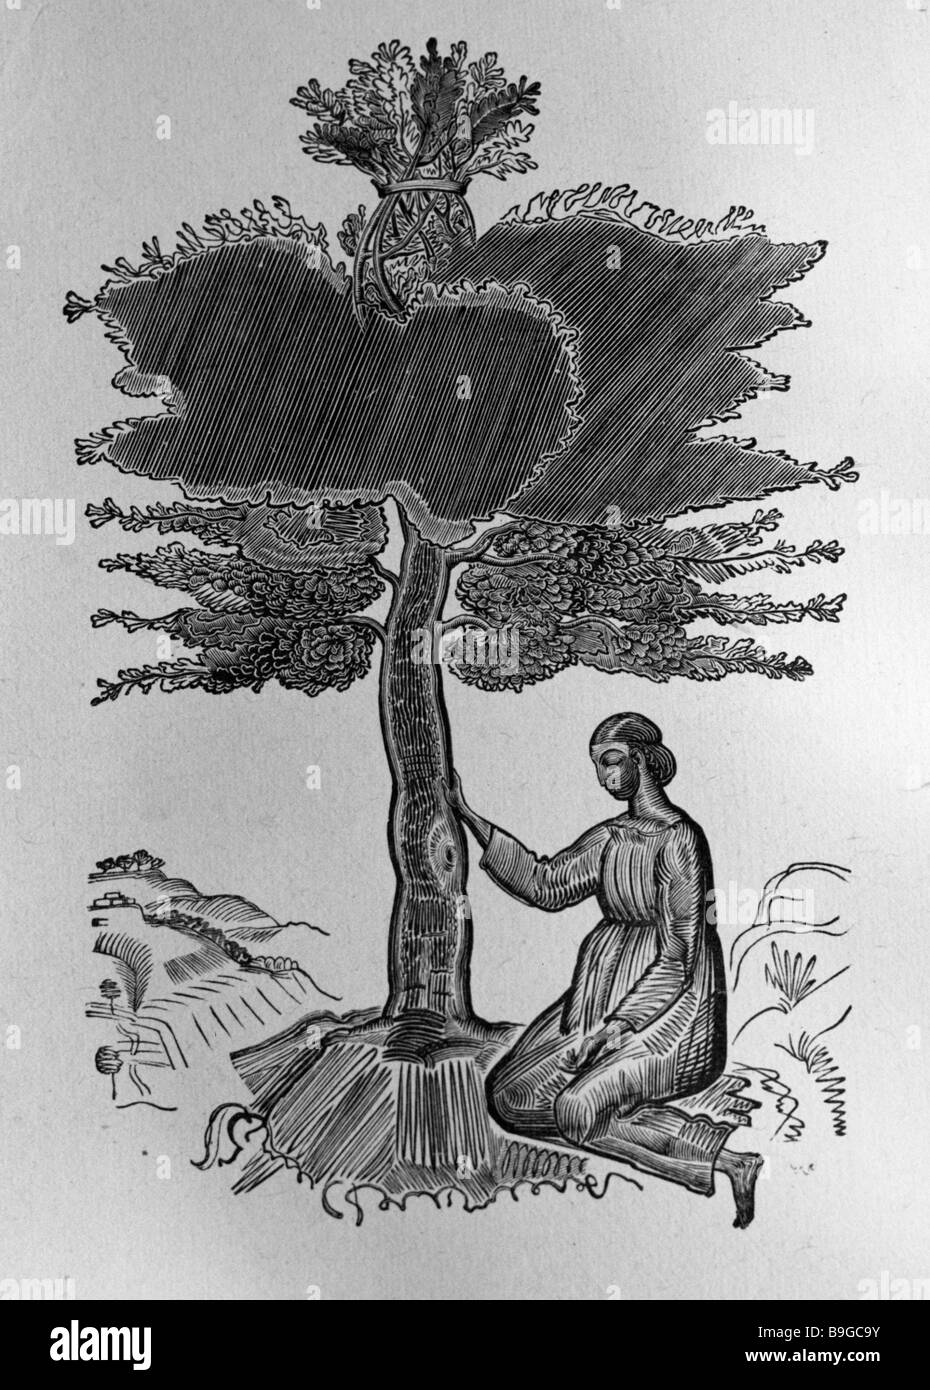 A reproduction of Ruth under a Tree a frontispiece to the book Ruth by Vladimir Favorsky from the collection of - Stock Image